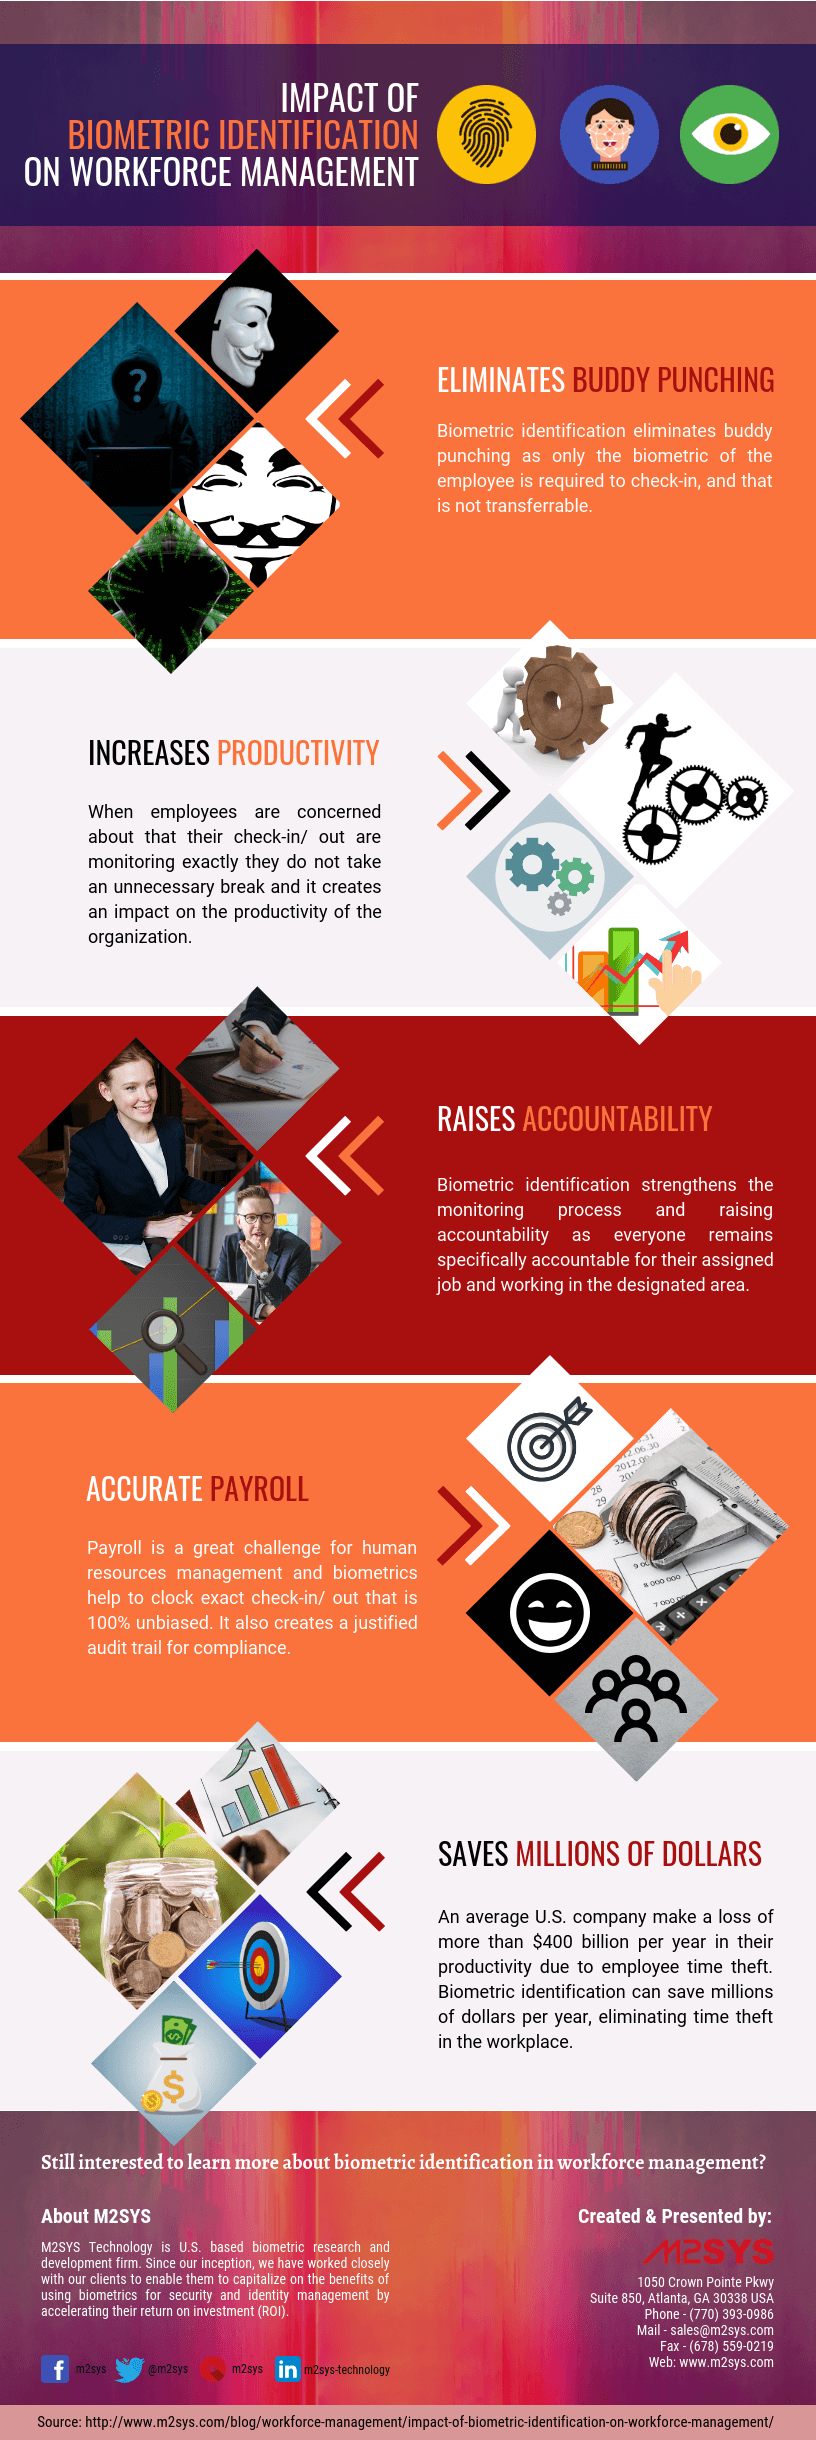 Infographic-Impact-of-Biometric-Identification-on-Workforce-Management